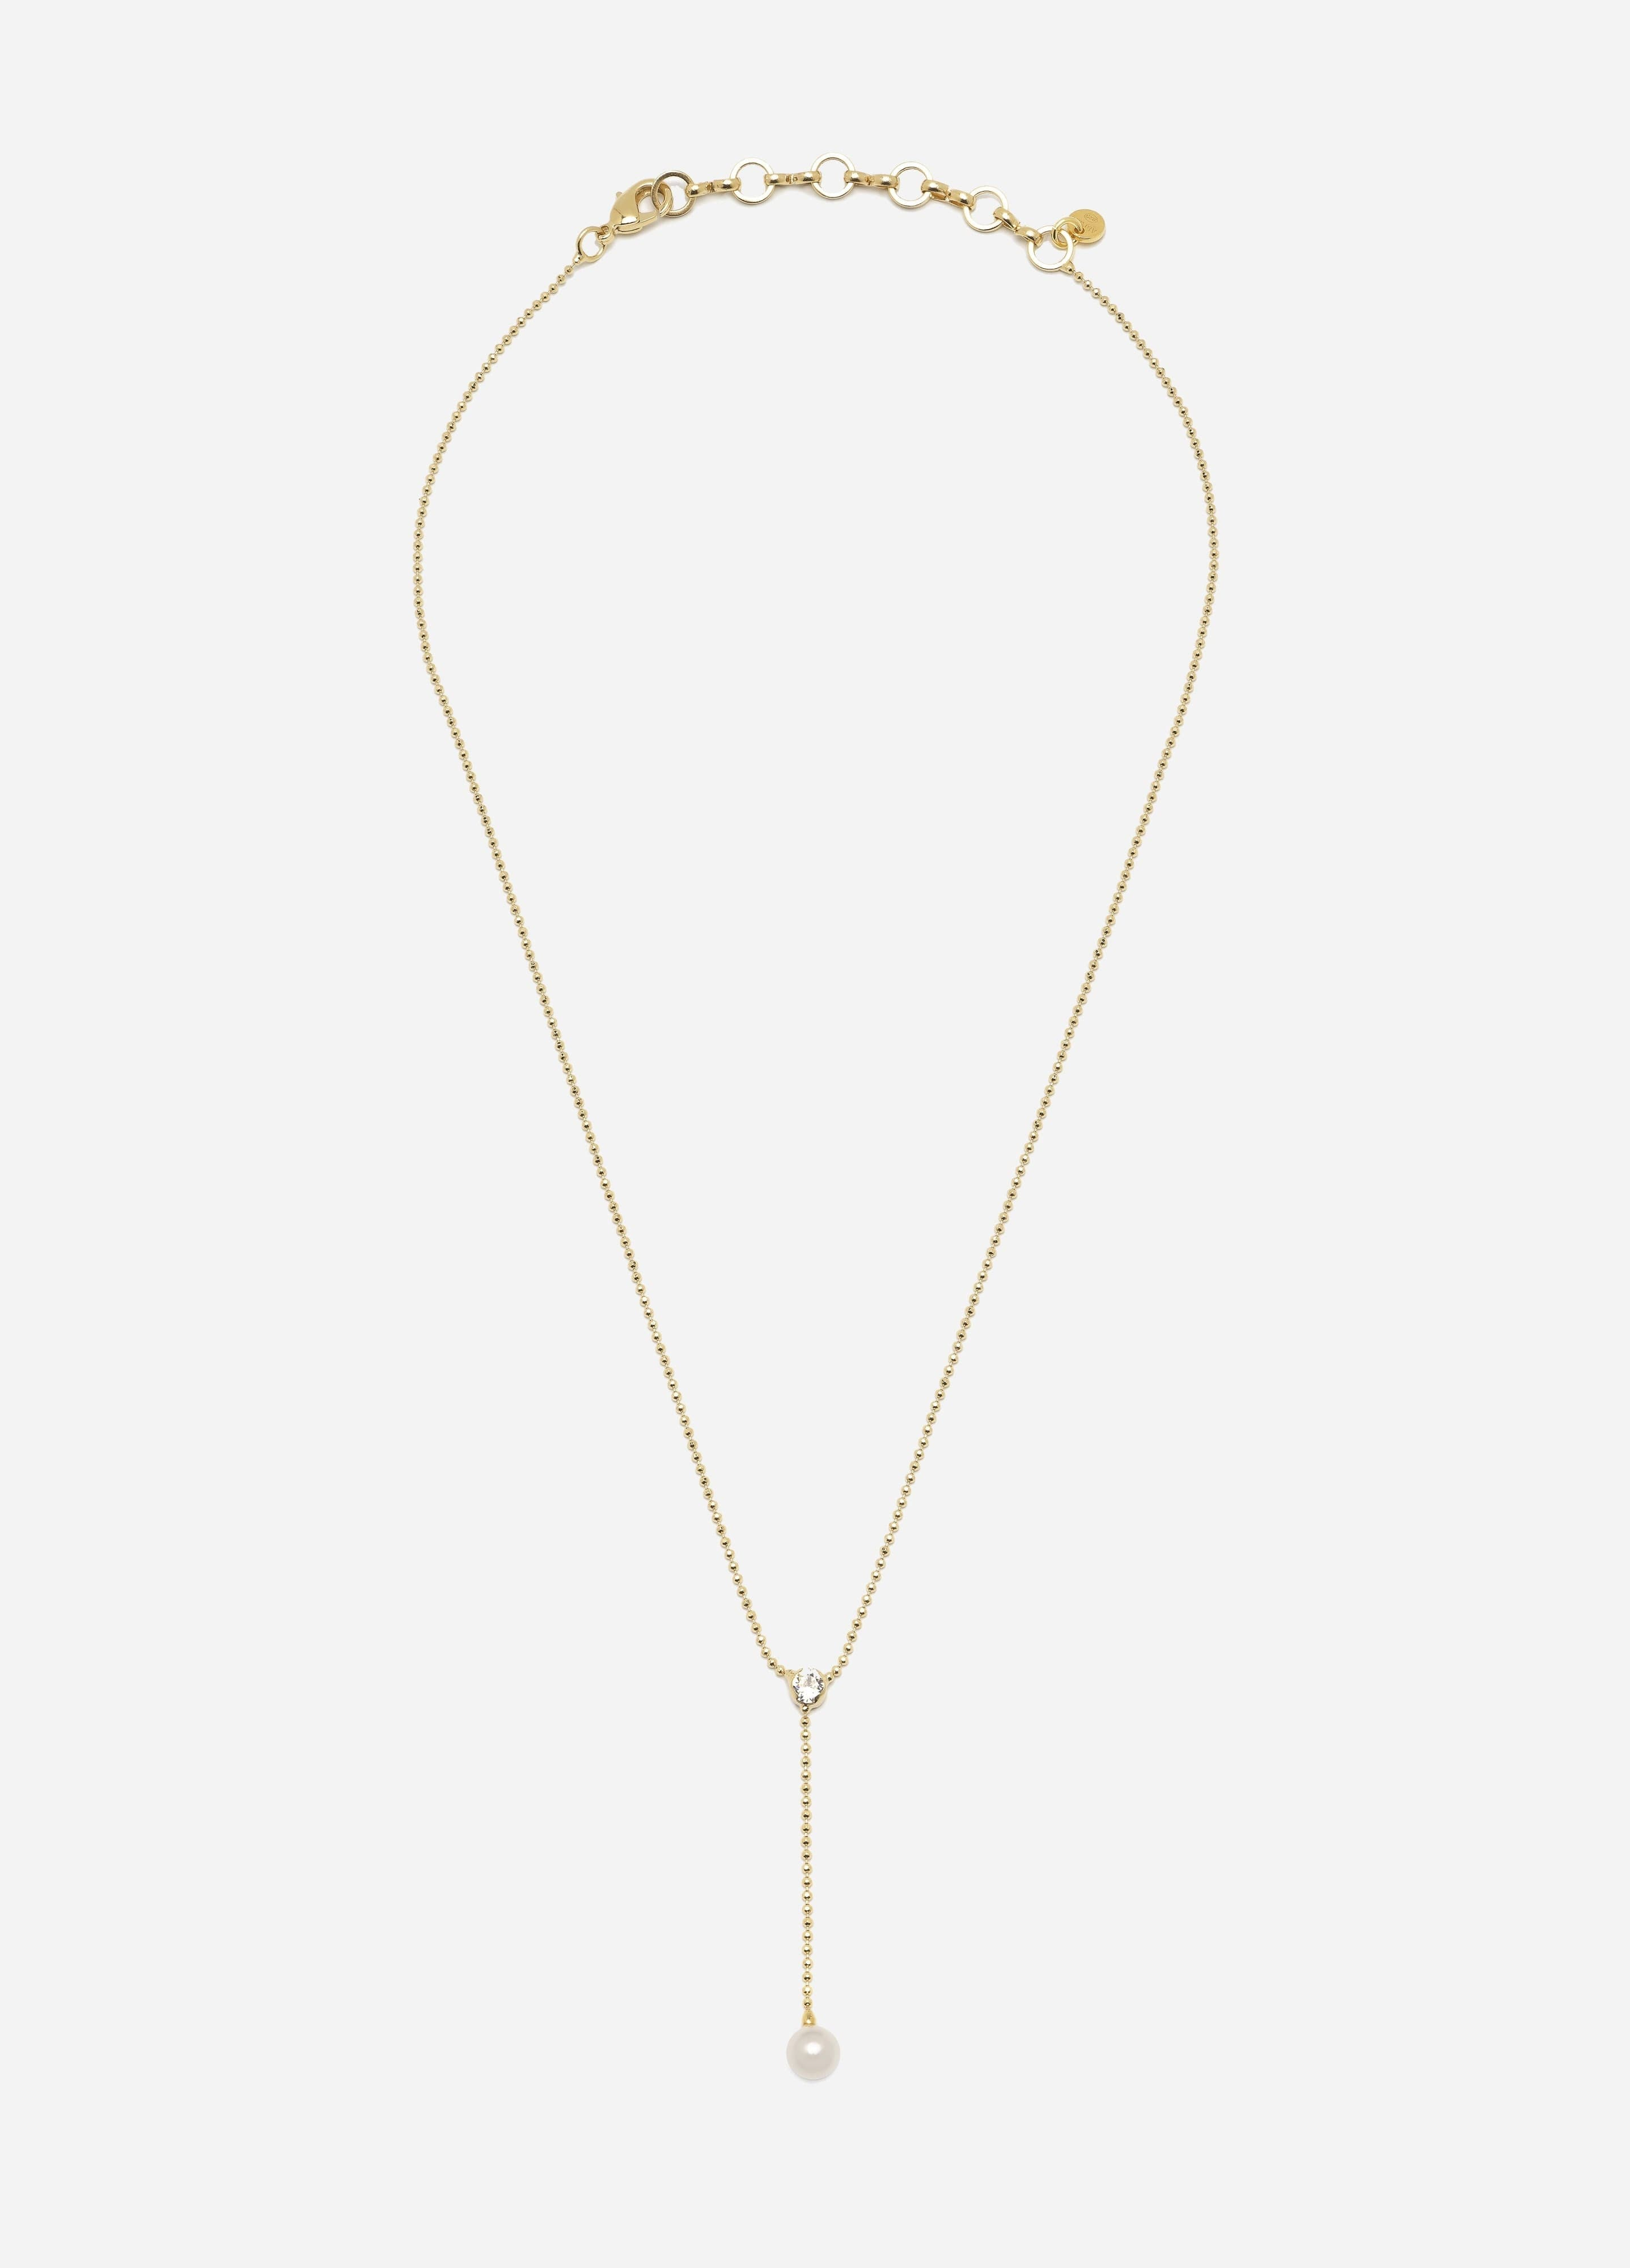 Lovey Necklace, Classic, Women, Gold